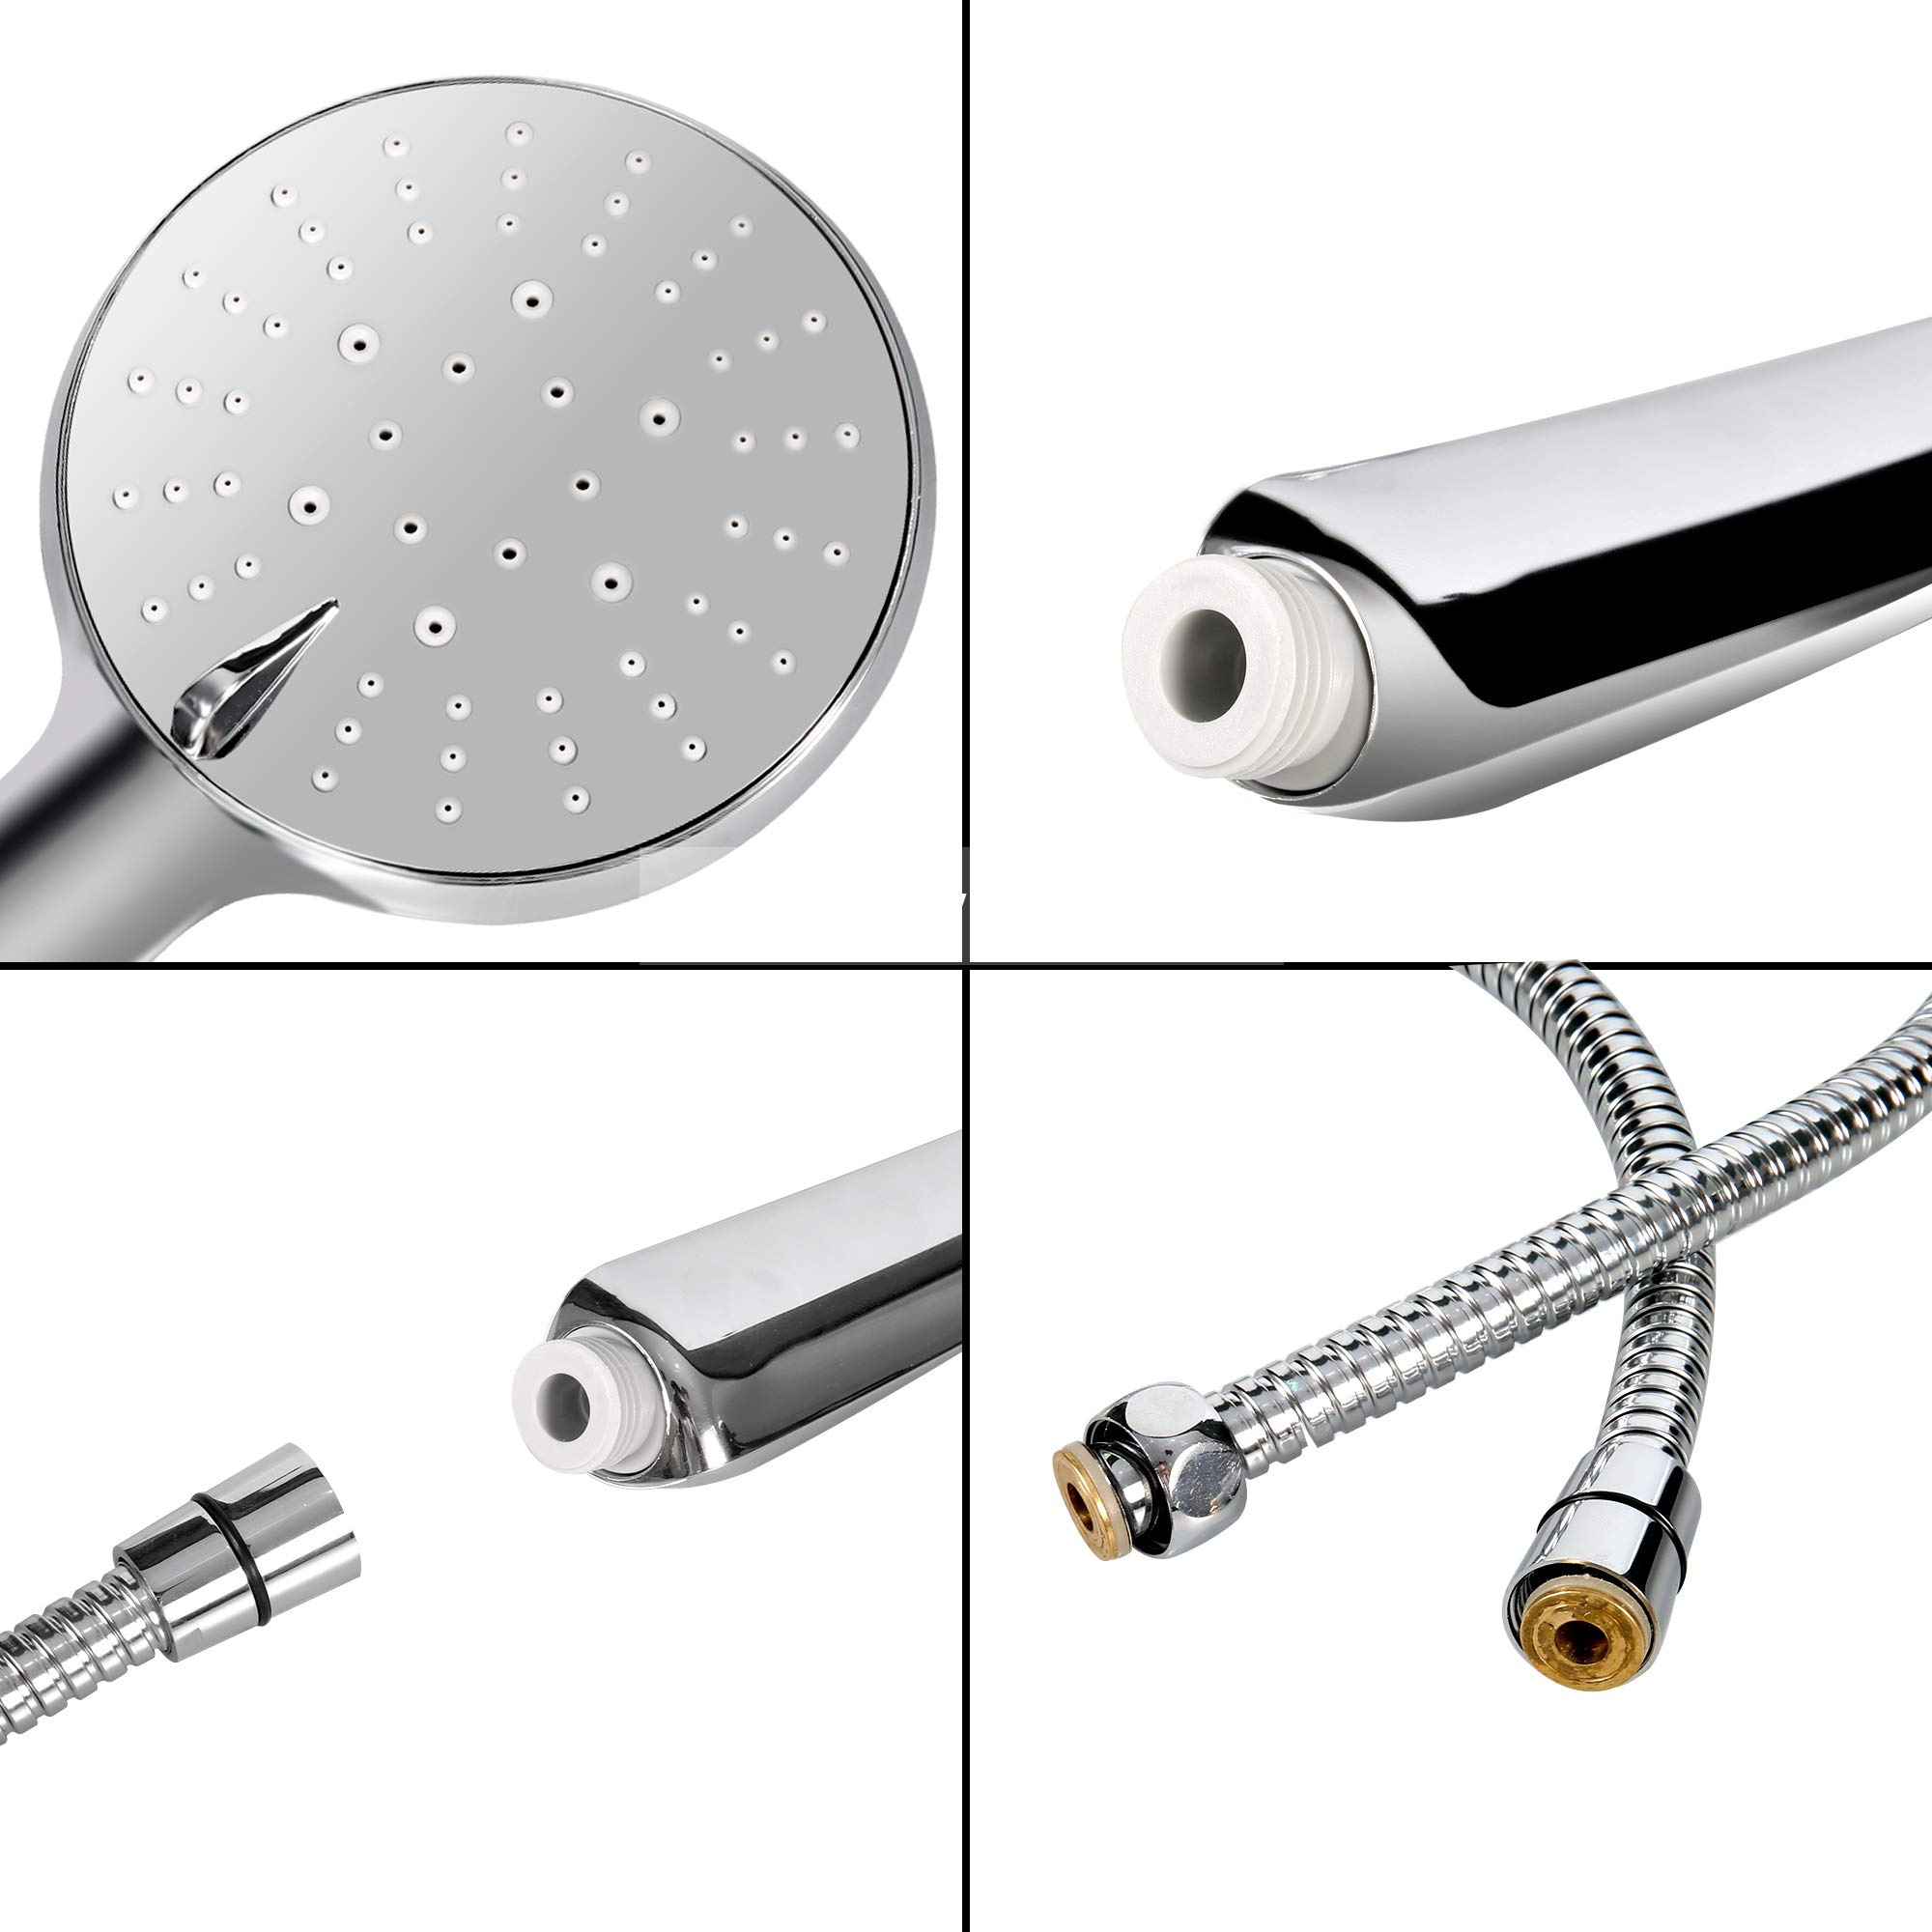 Bathroom Shower Head Kit with 1.5M Stainless Steel Shower Hose, Handheld 3 Spray Water Flow Options Adjustable Head Set, Water Saving Mode, Full Chrome